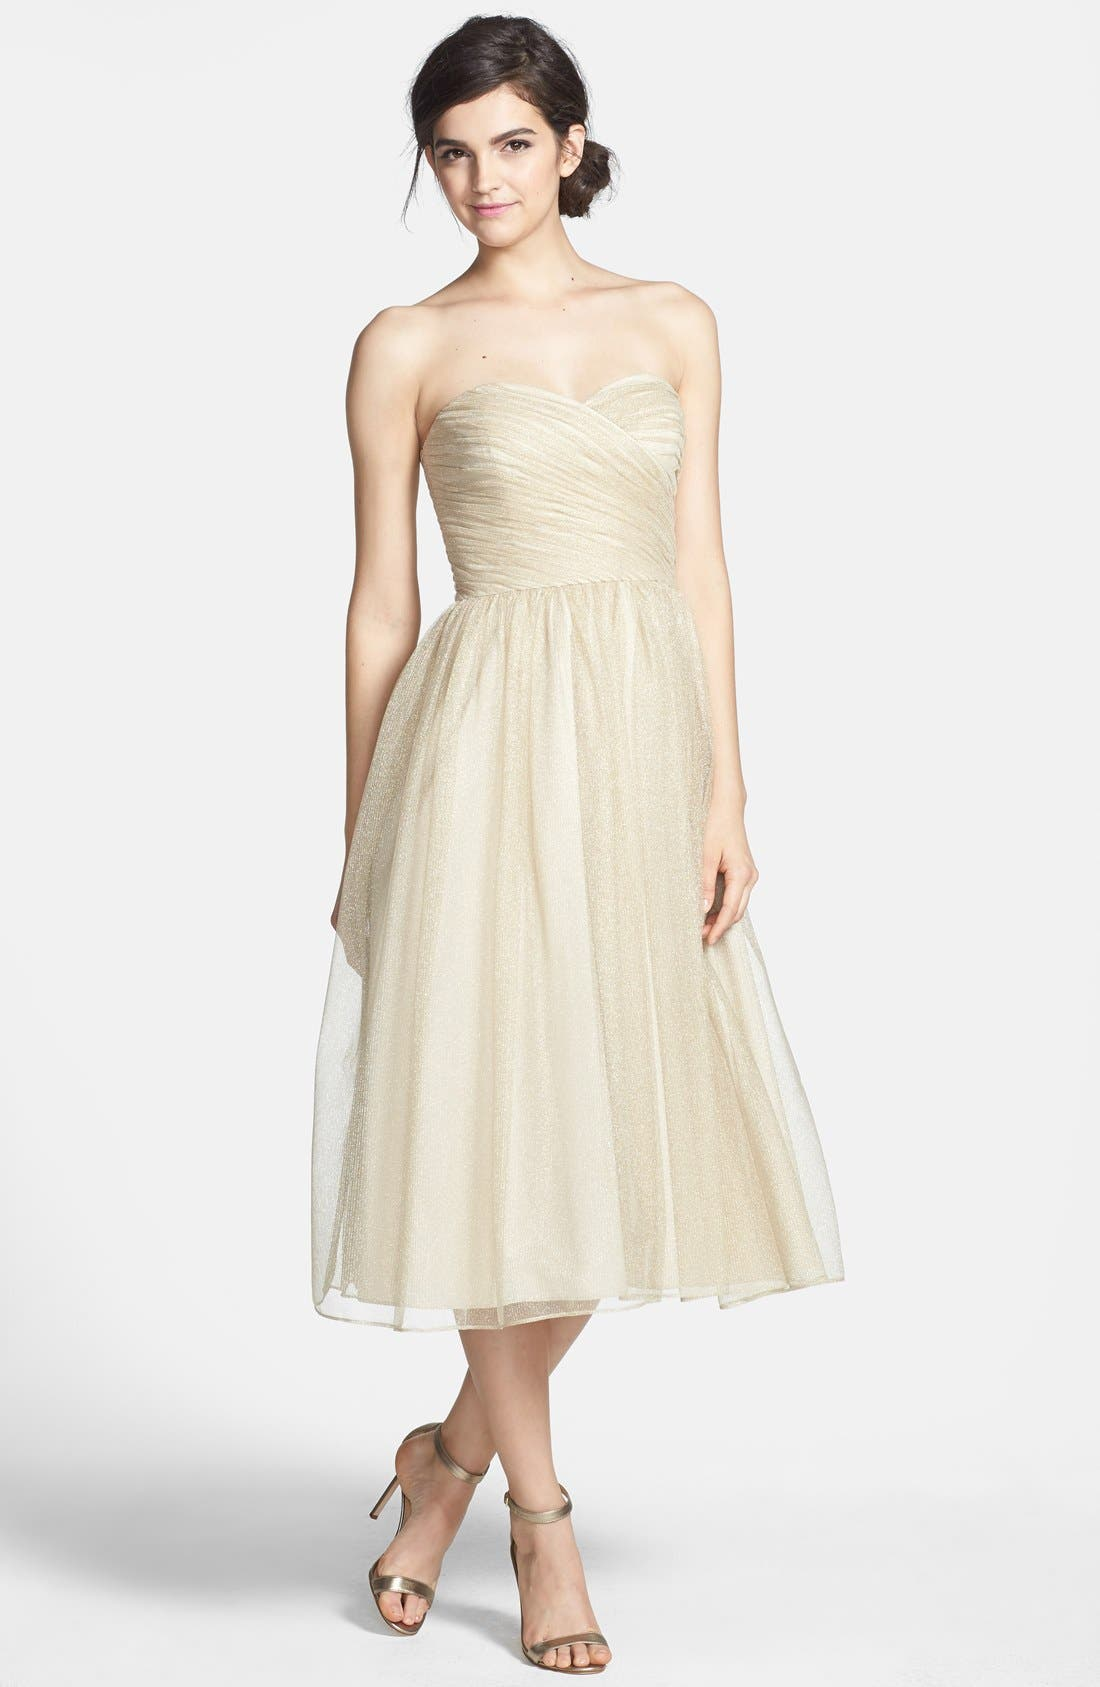 Main Image - Aidan Mattox Ruched Metallic Tea Length Tulle Fit & Flare Dress